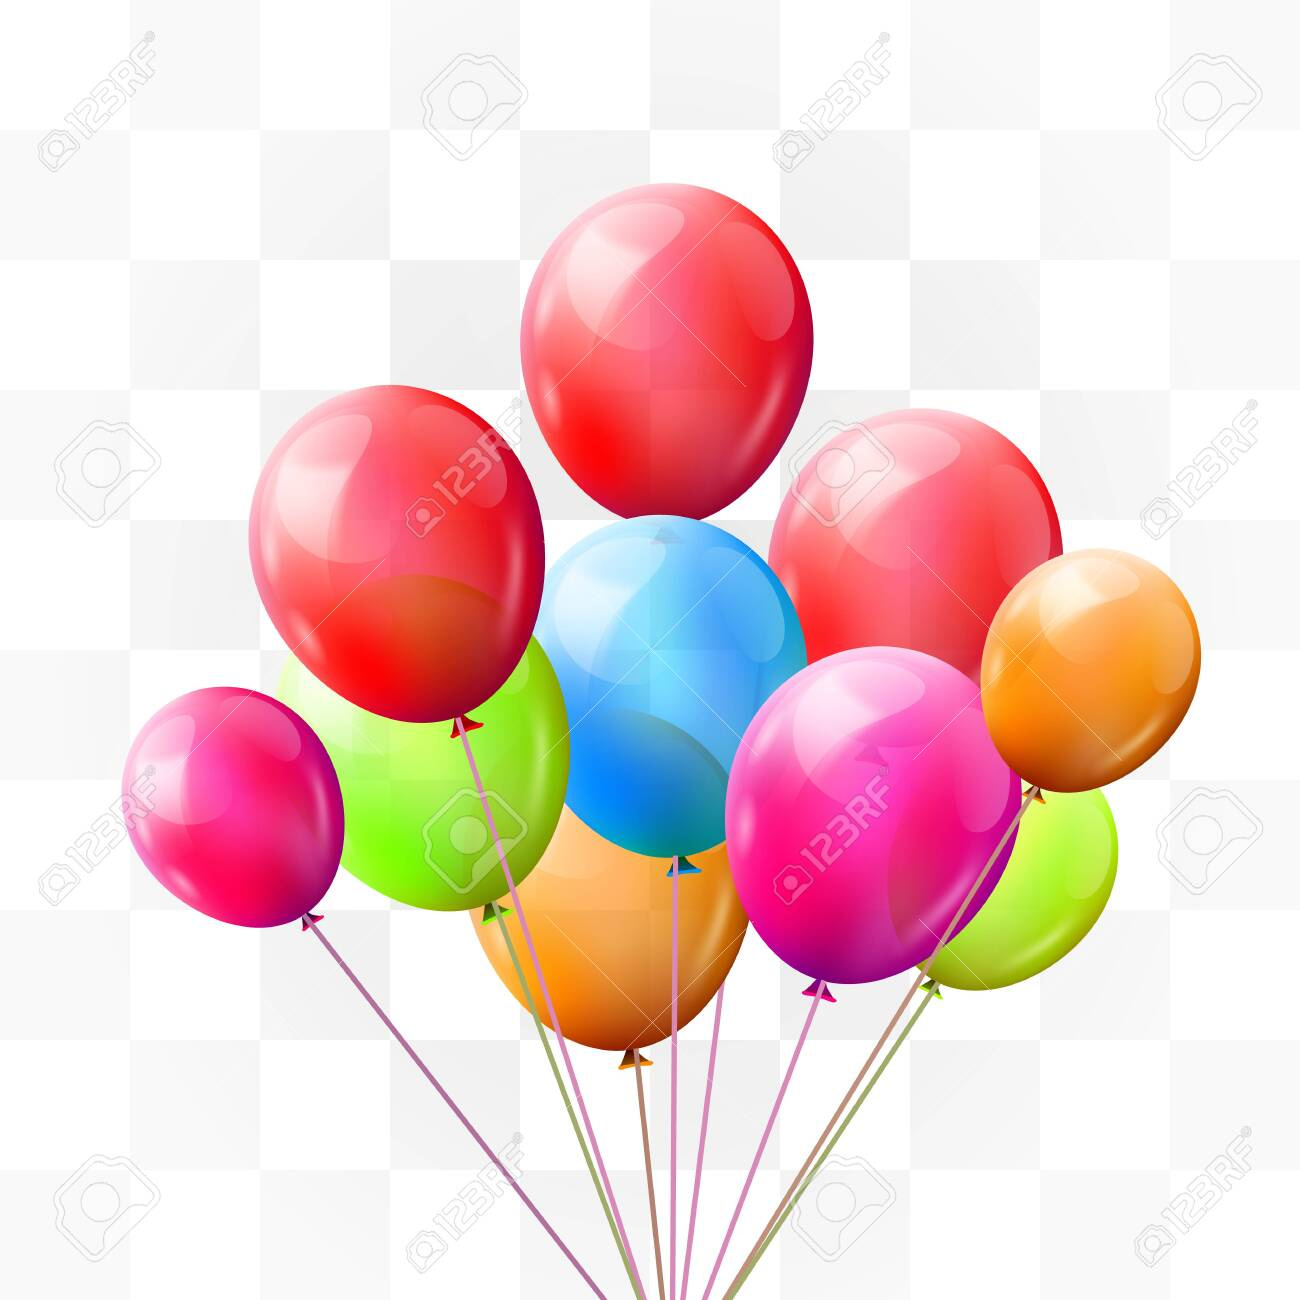 Balloon brunch on transparent background. Greeting, happy birthday concept. Vector illustration - 133423986